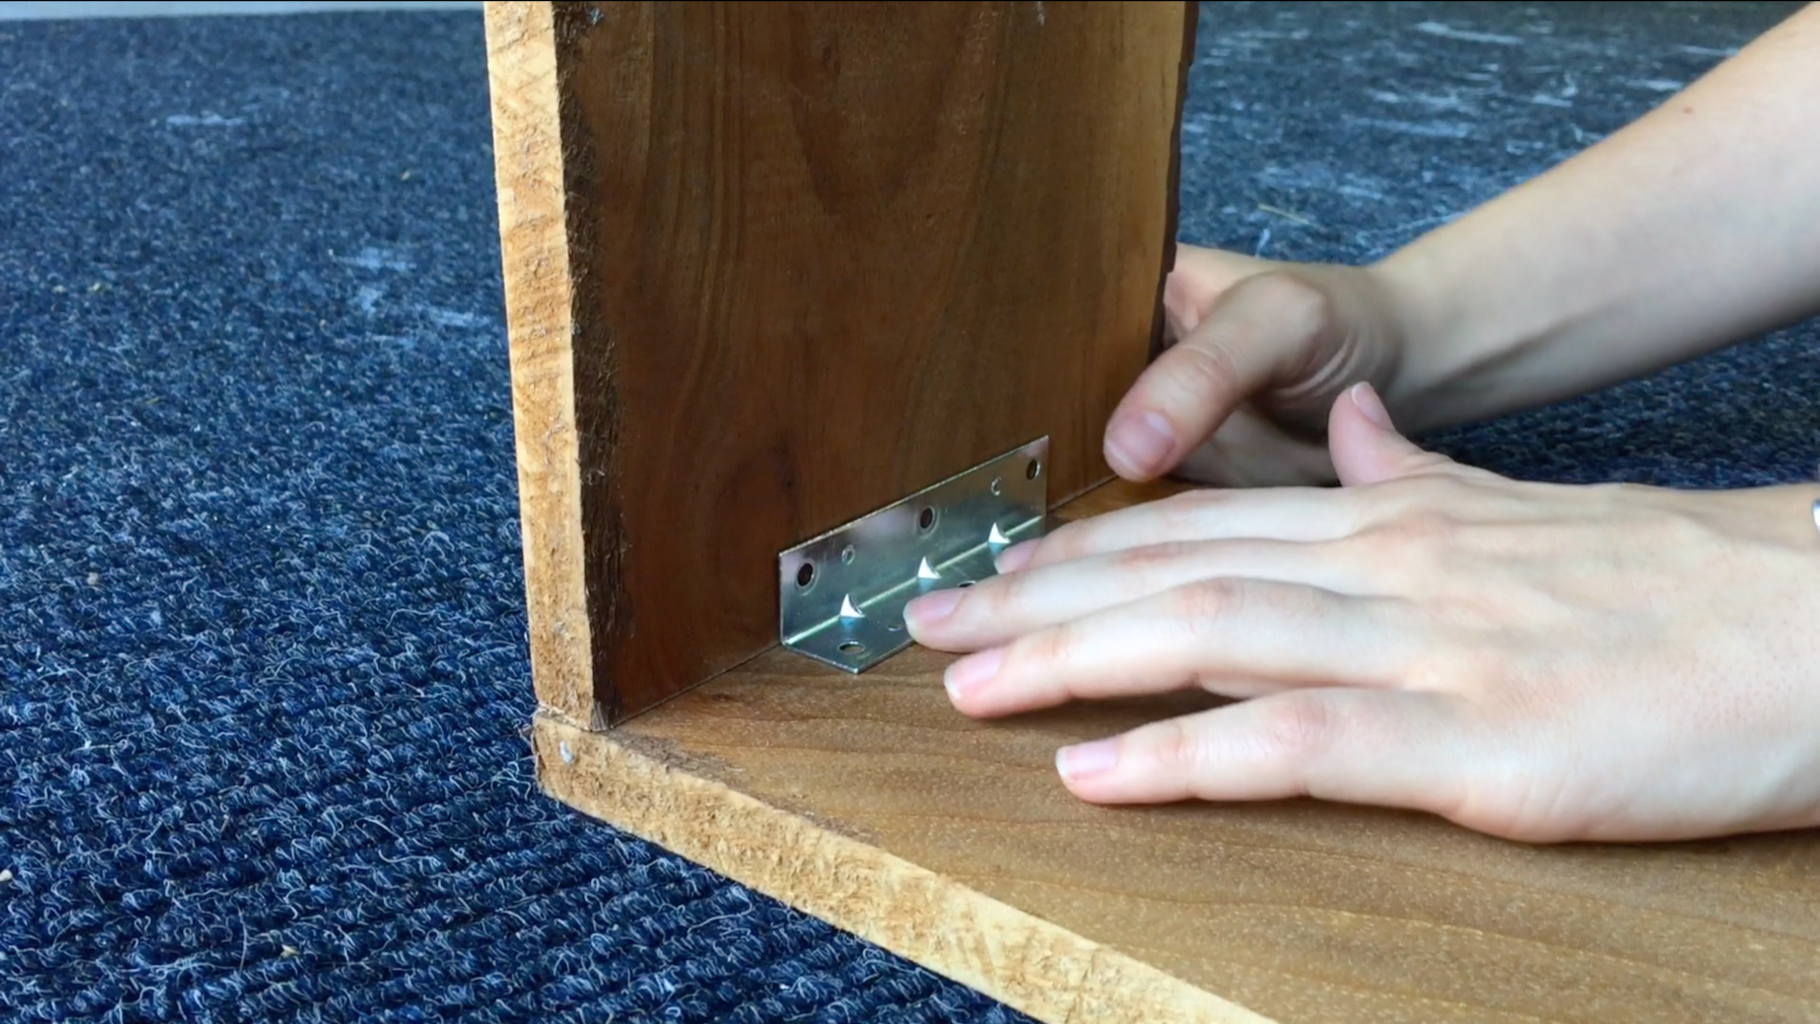 After Making Cuts, Attach Corner Brackets to Sides of Board.